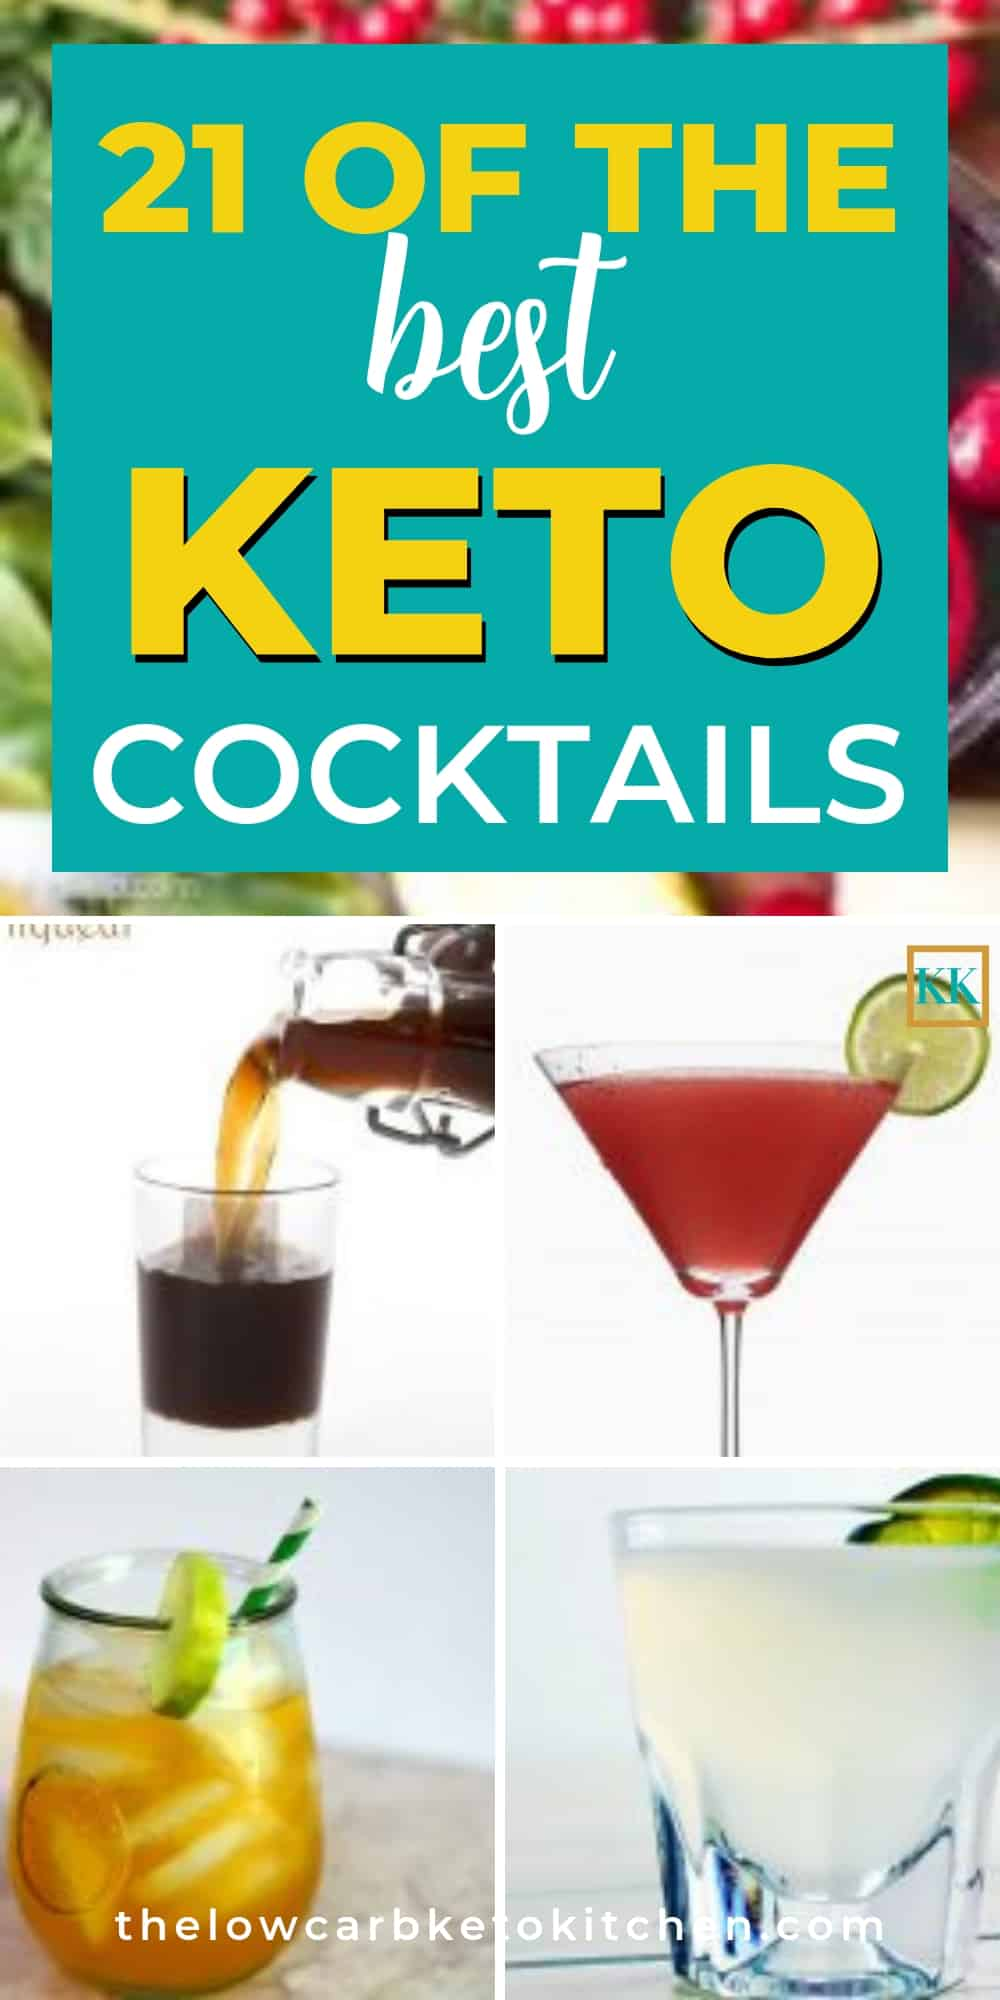 The Big Giant List of Low Carb & Keto Cocktails